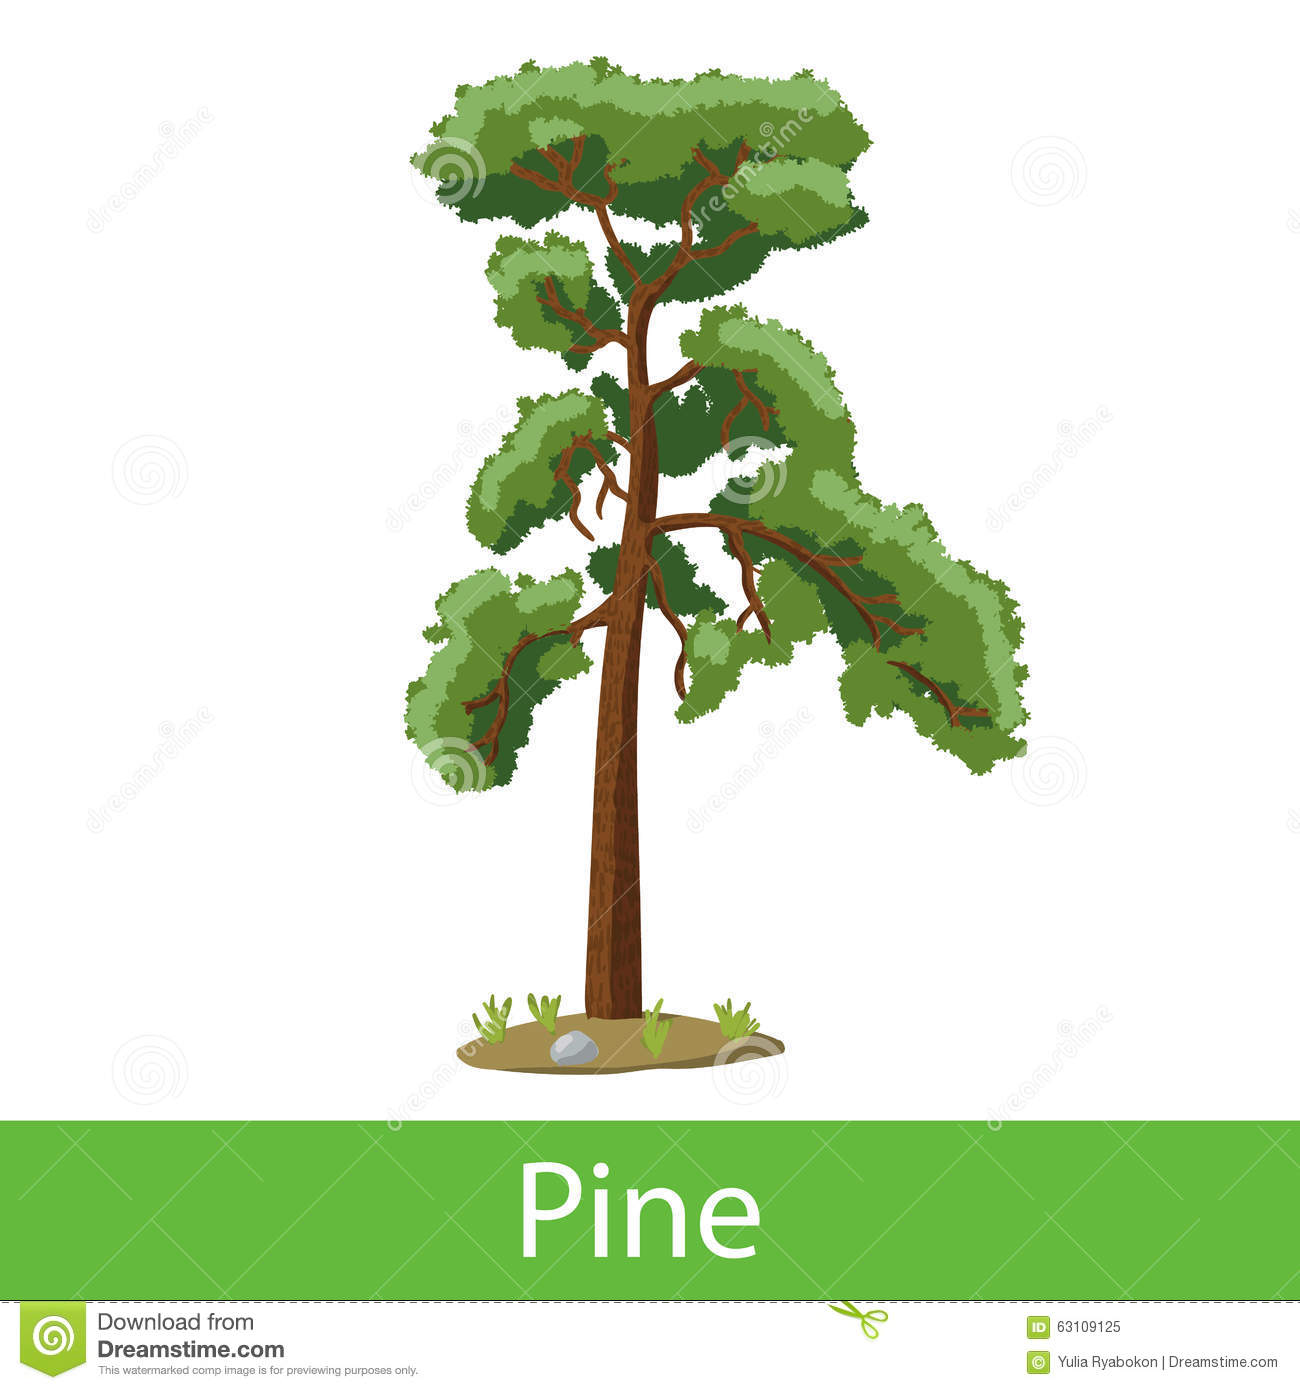 Pine cartoon tree. Single illustration on a white background.